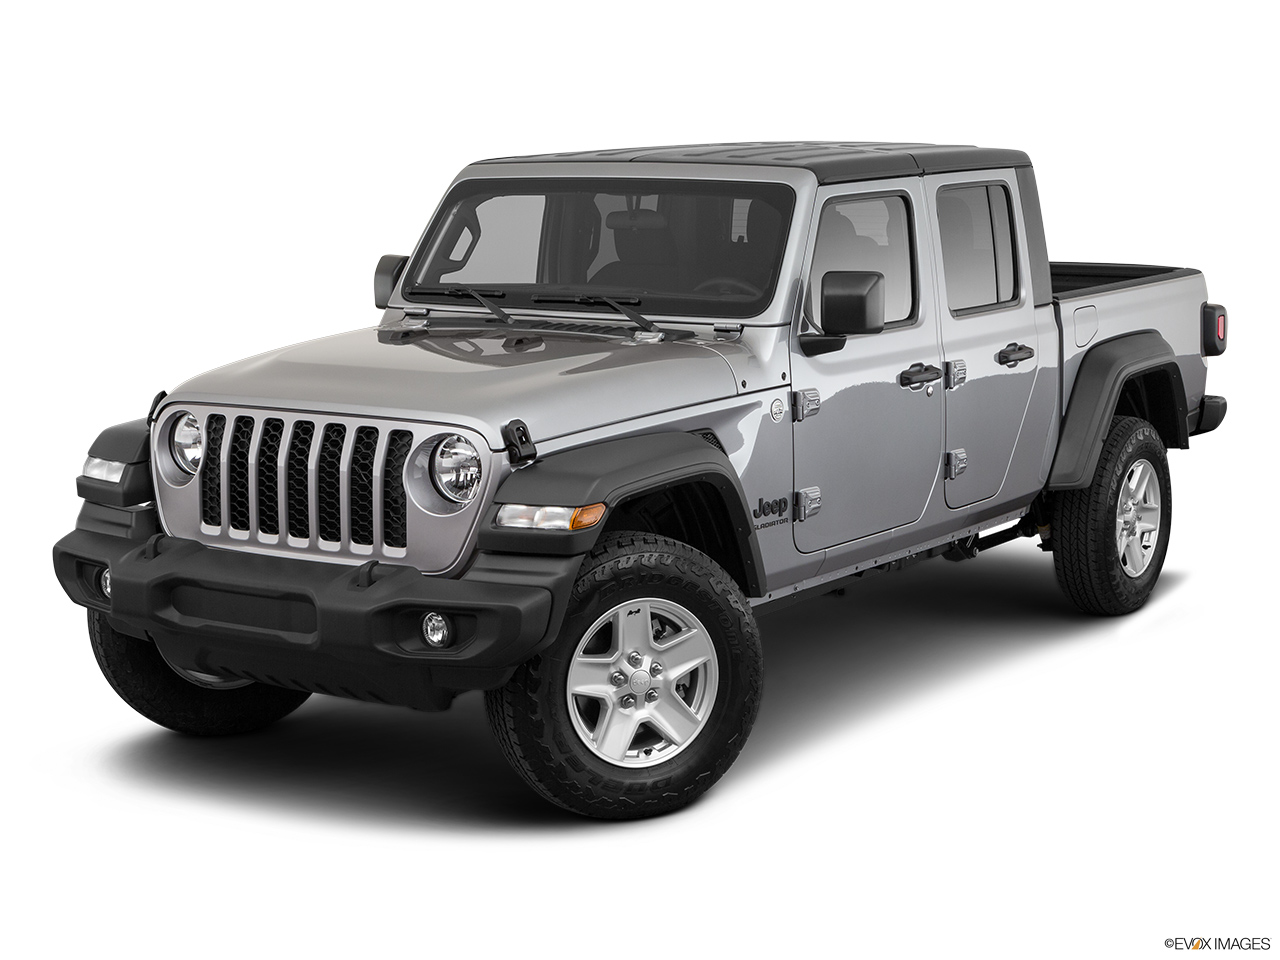 2020 Jeep Gladiator Sport S Front angle view.